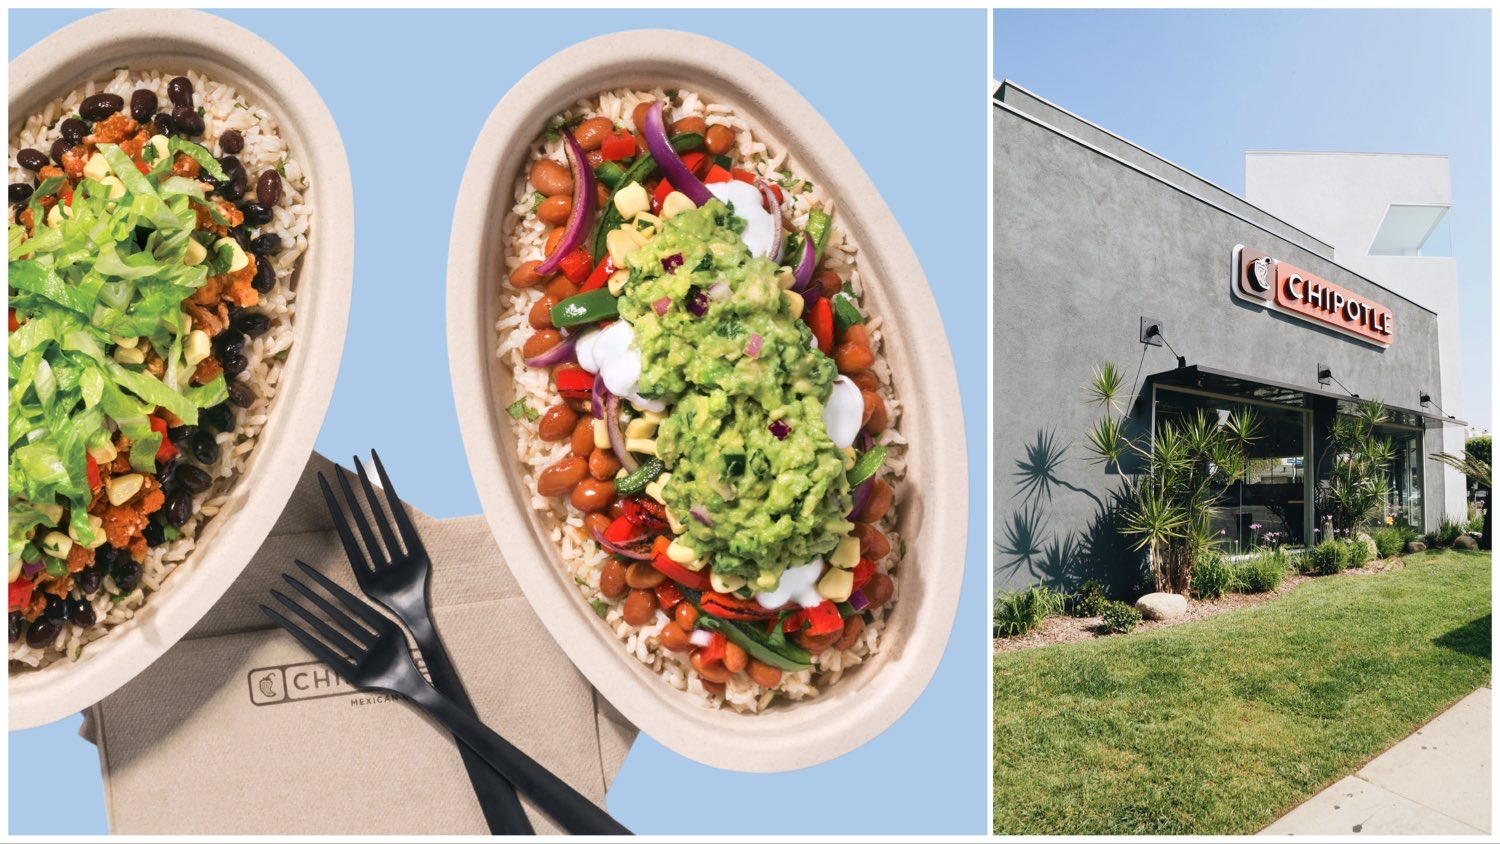 Split image of two vegan Chipotle burrito bowls on a pale blue background (left) and a Chipotle storefront (right).